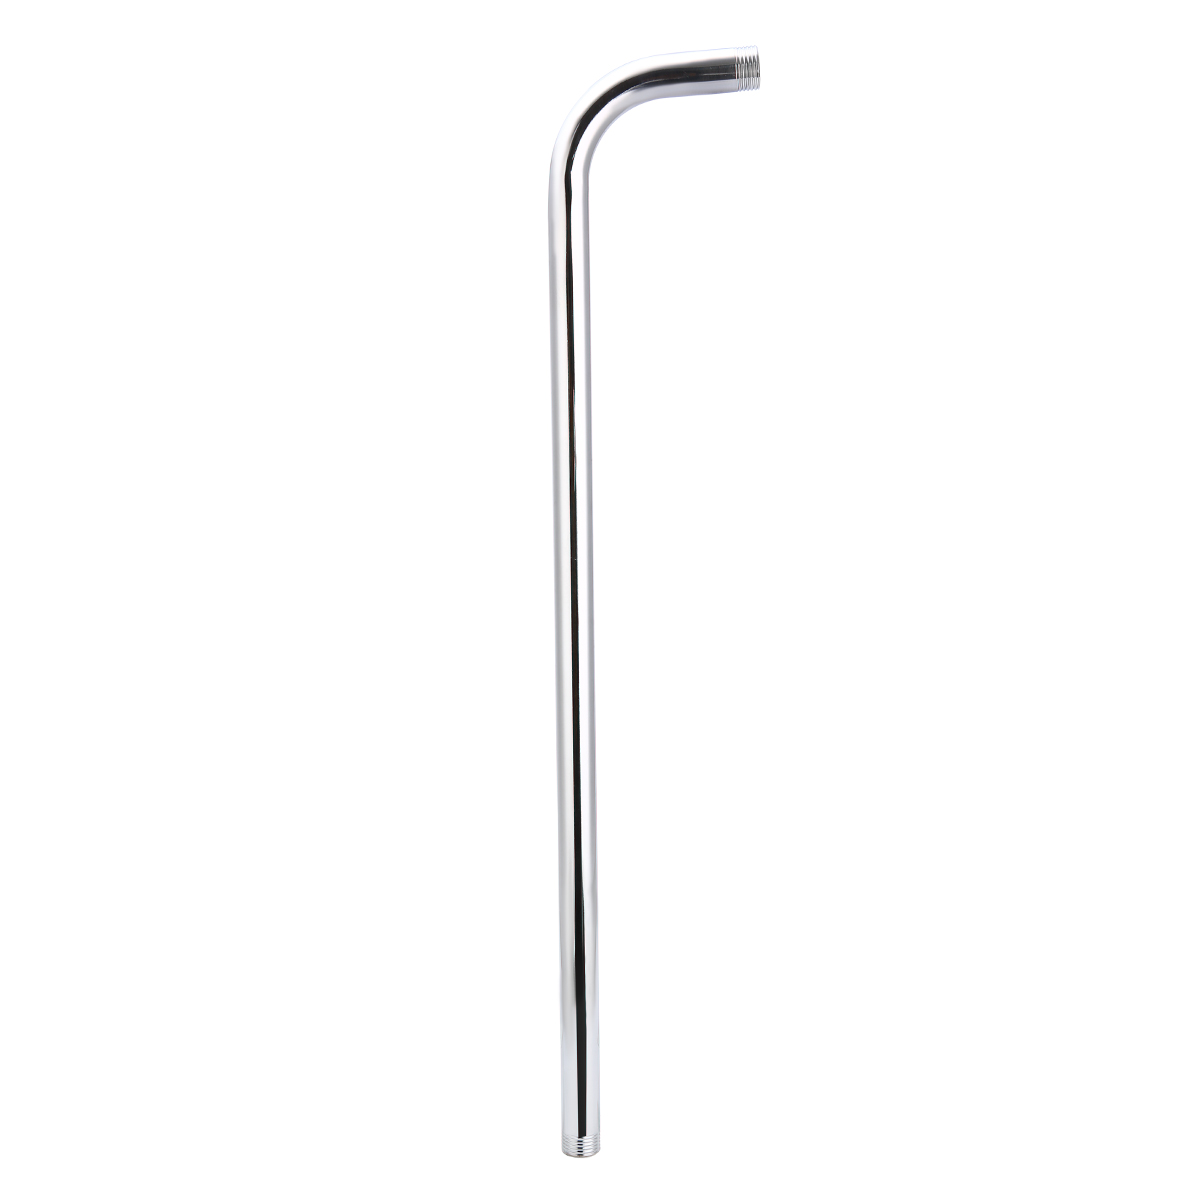 24 Inch 60cm Stainless Steel Wall Mounted Tube Rain Bathroom Fixtures Replacement Shower Head Shower Arms